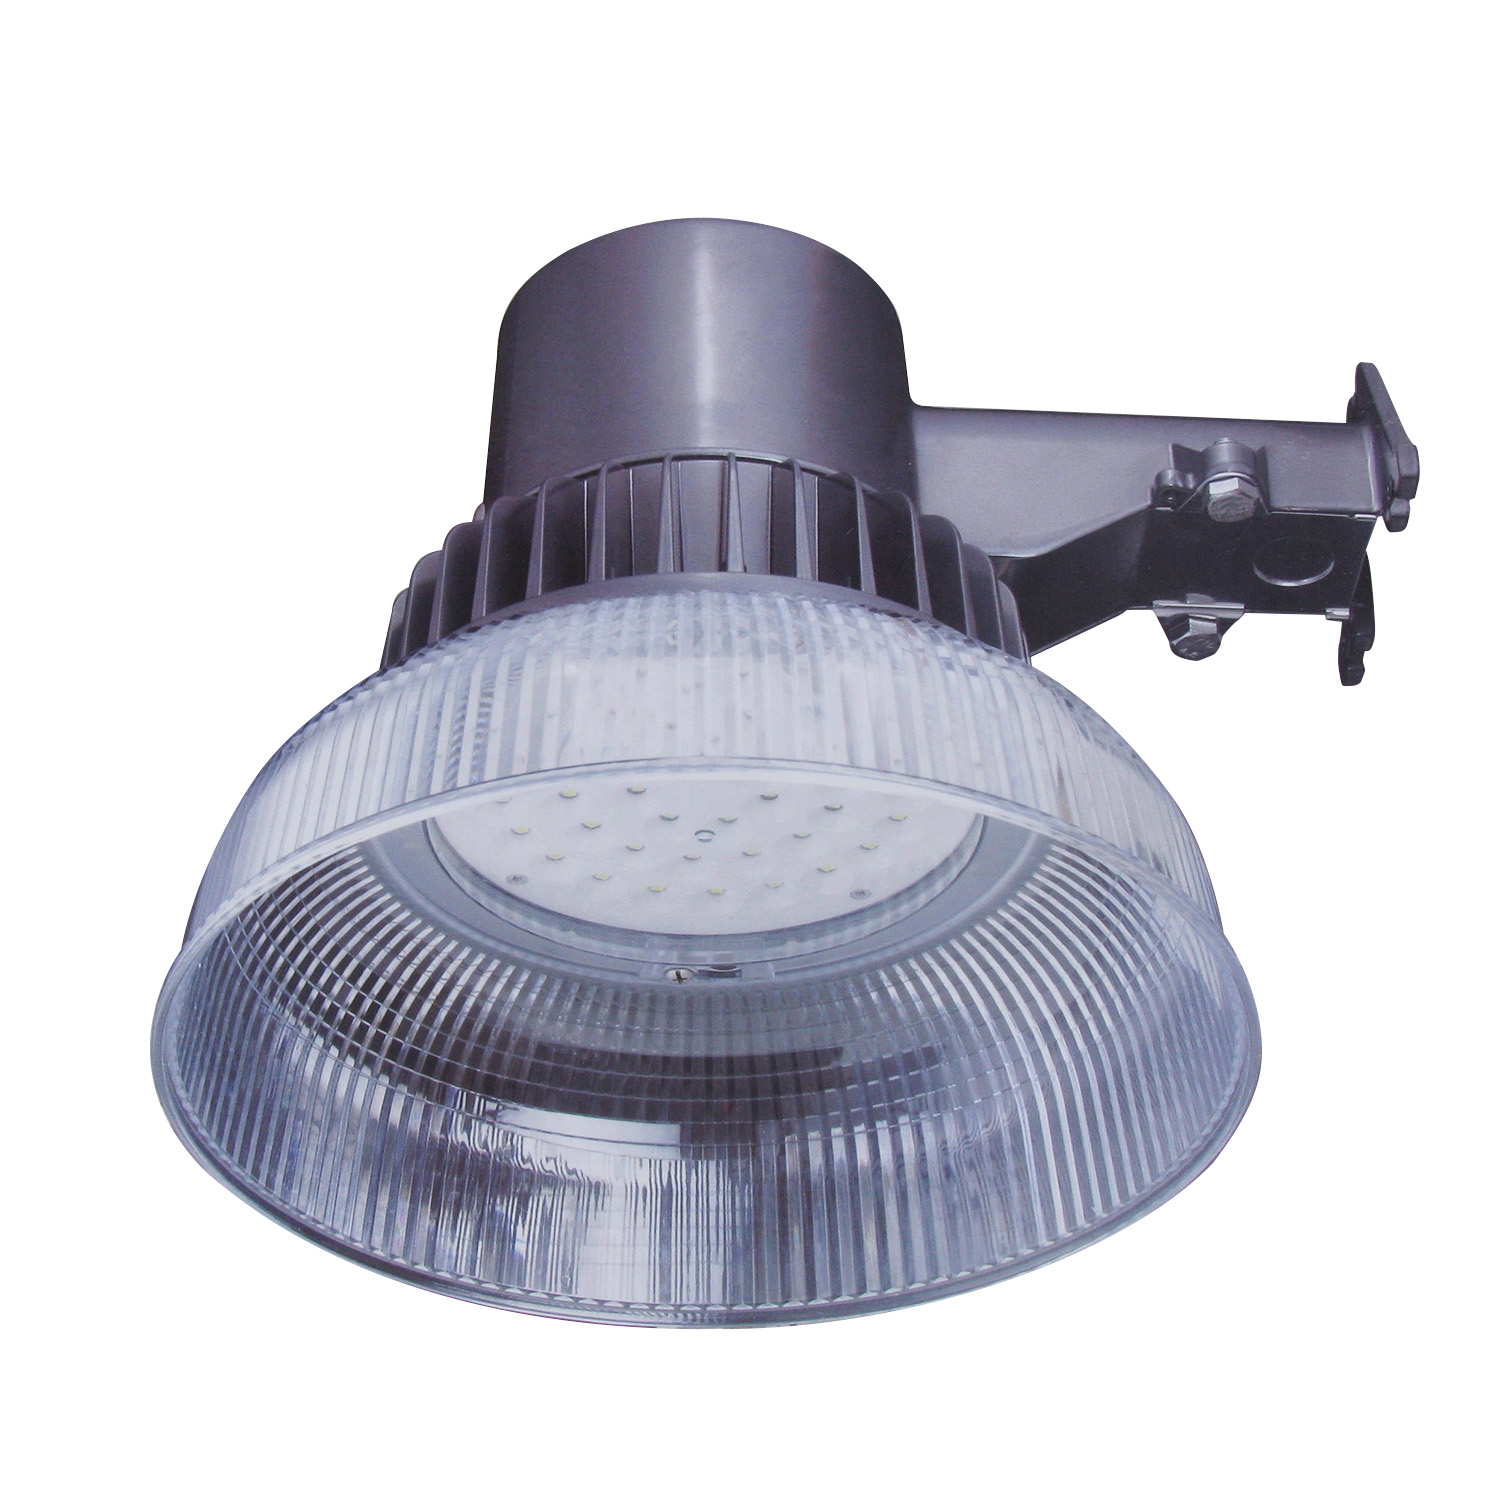 Double Insulated Outdoor Security Lights: Honeywell LED Security Light In Aluminum Construction